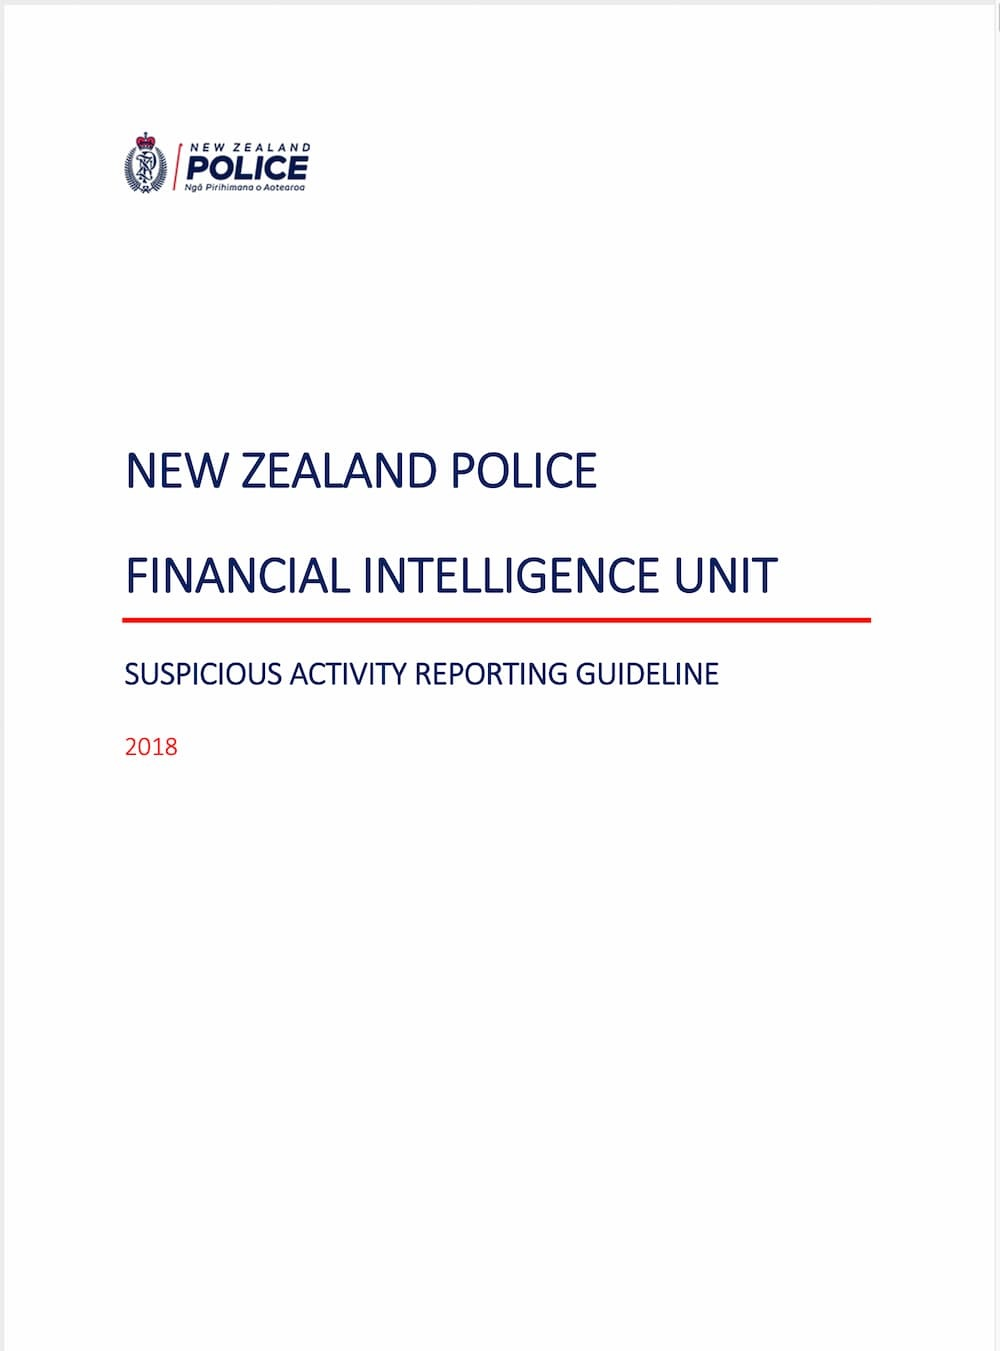 FIU Suspicious Activity Reporting Guideline (2018)